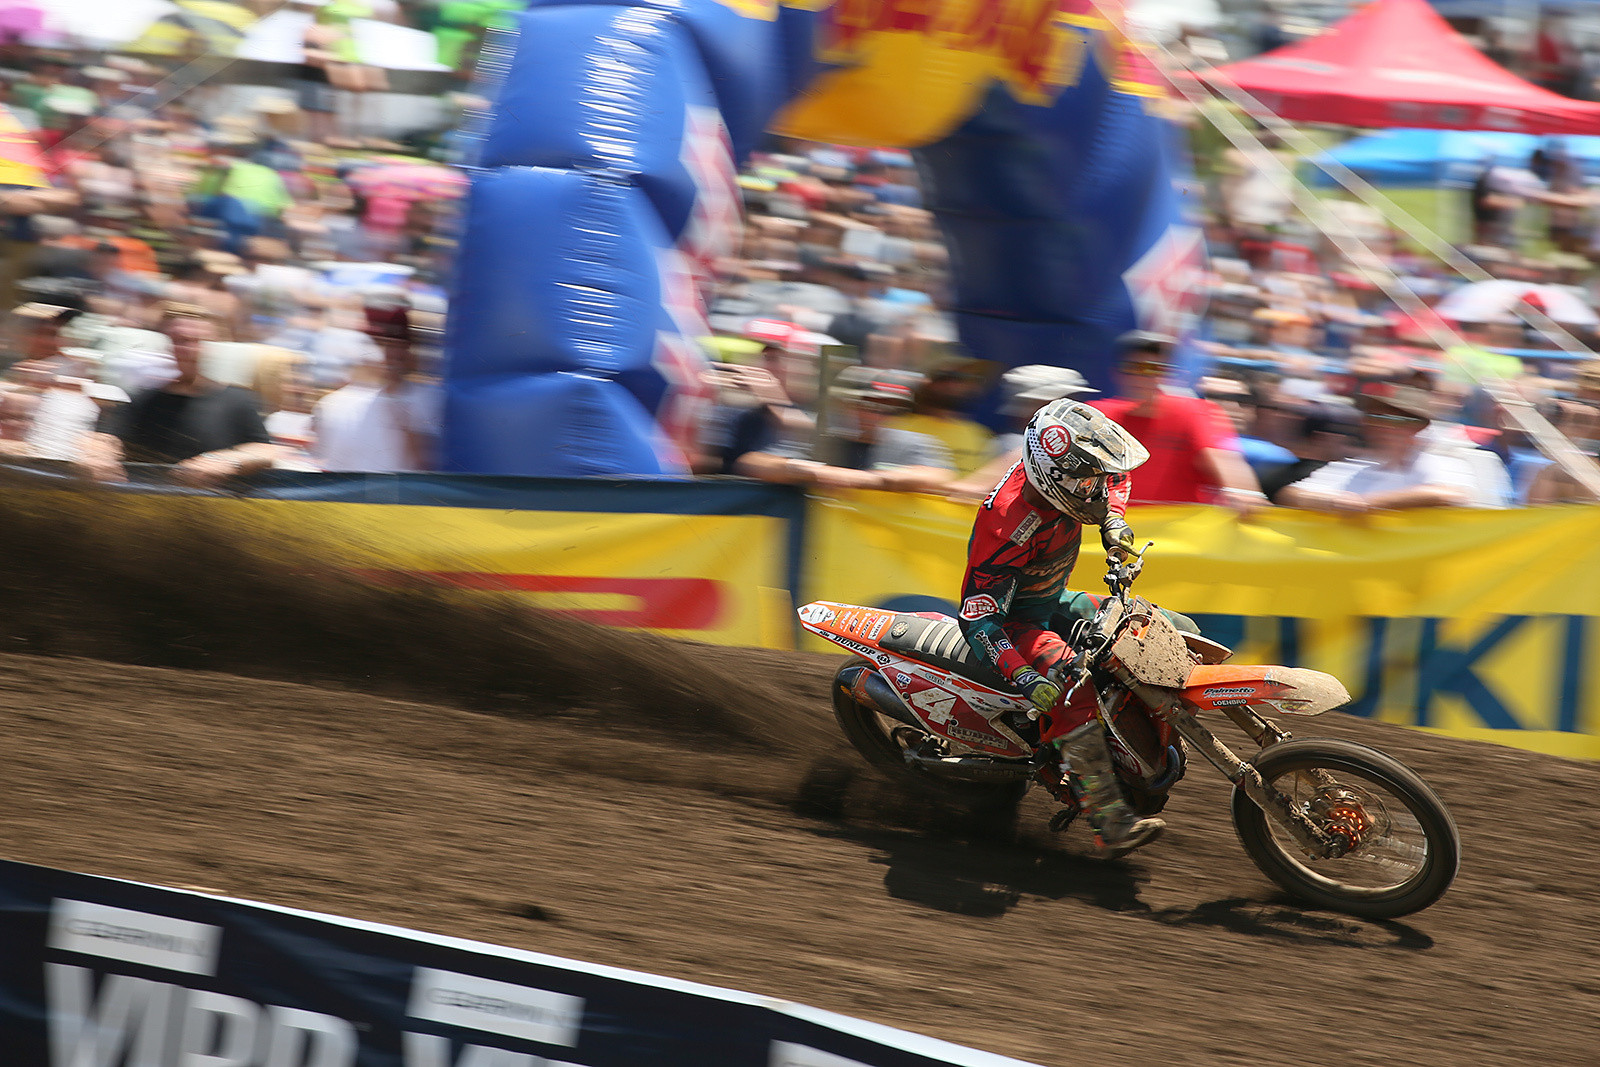 The 450 points leader, Blake Baggett, was a bit off the pace in moto one, and finished third.